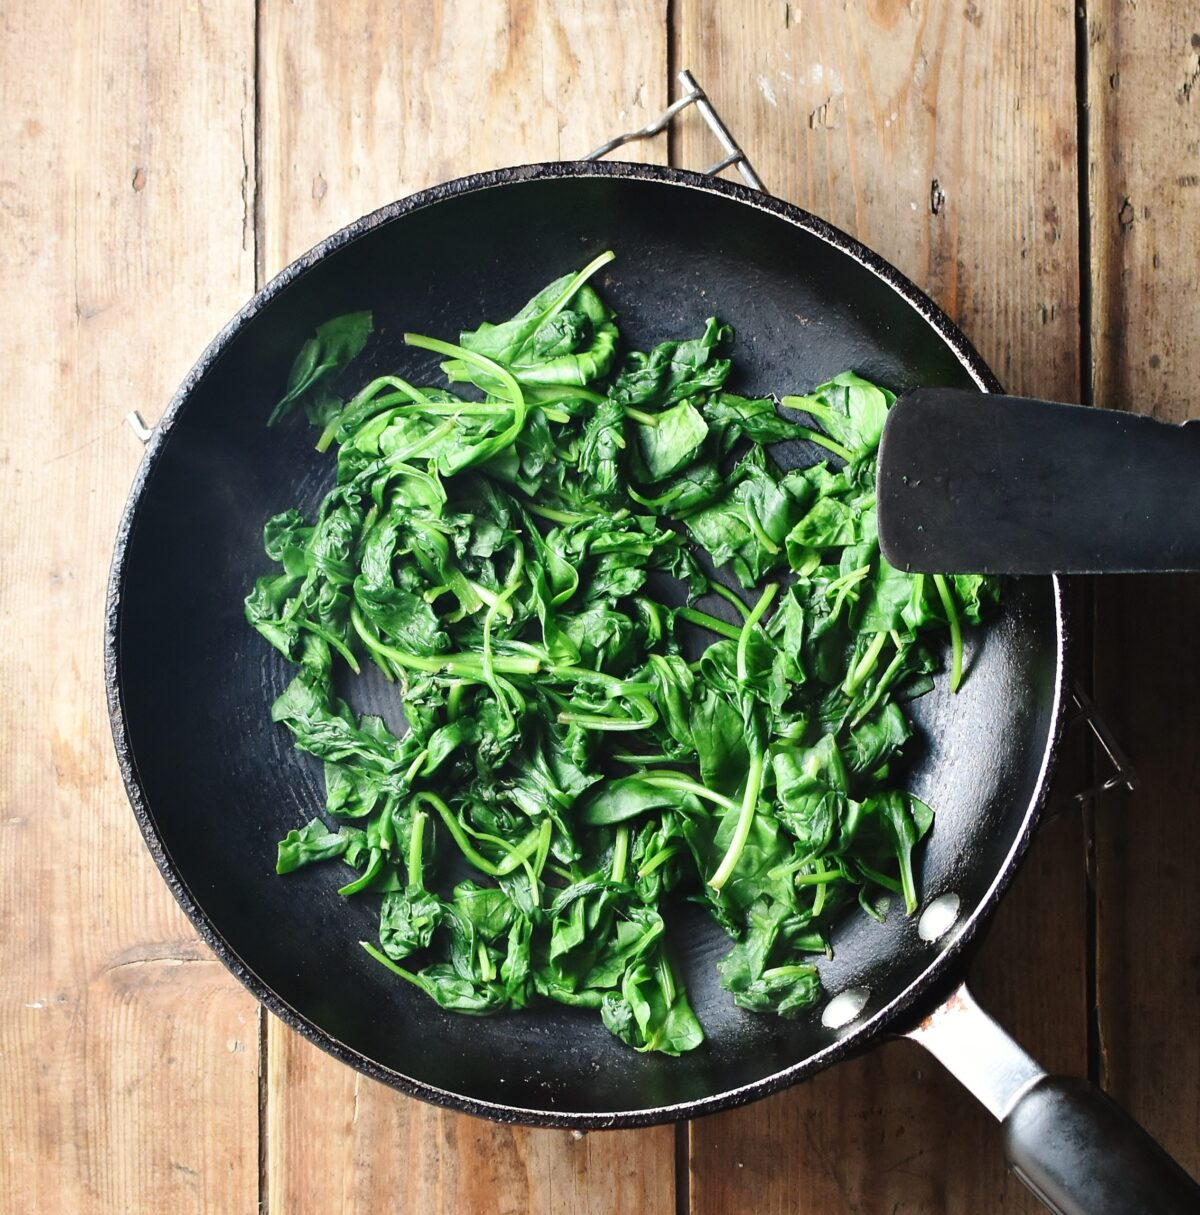 Wilted spinach in black pan.